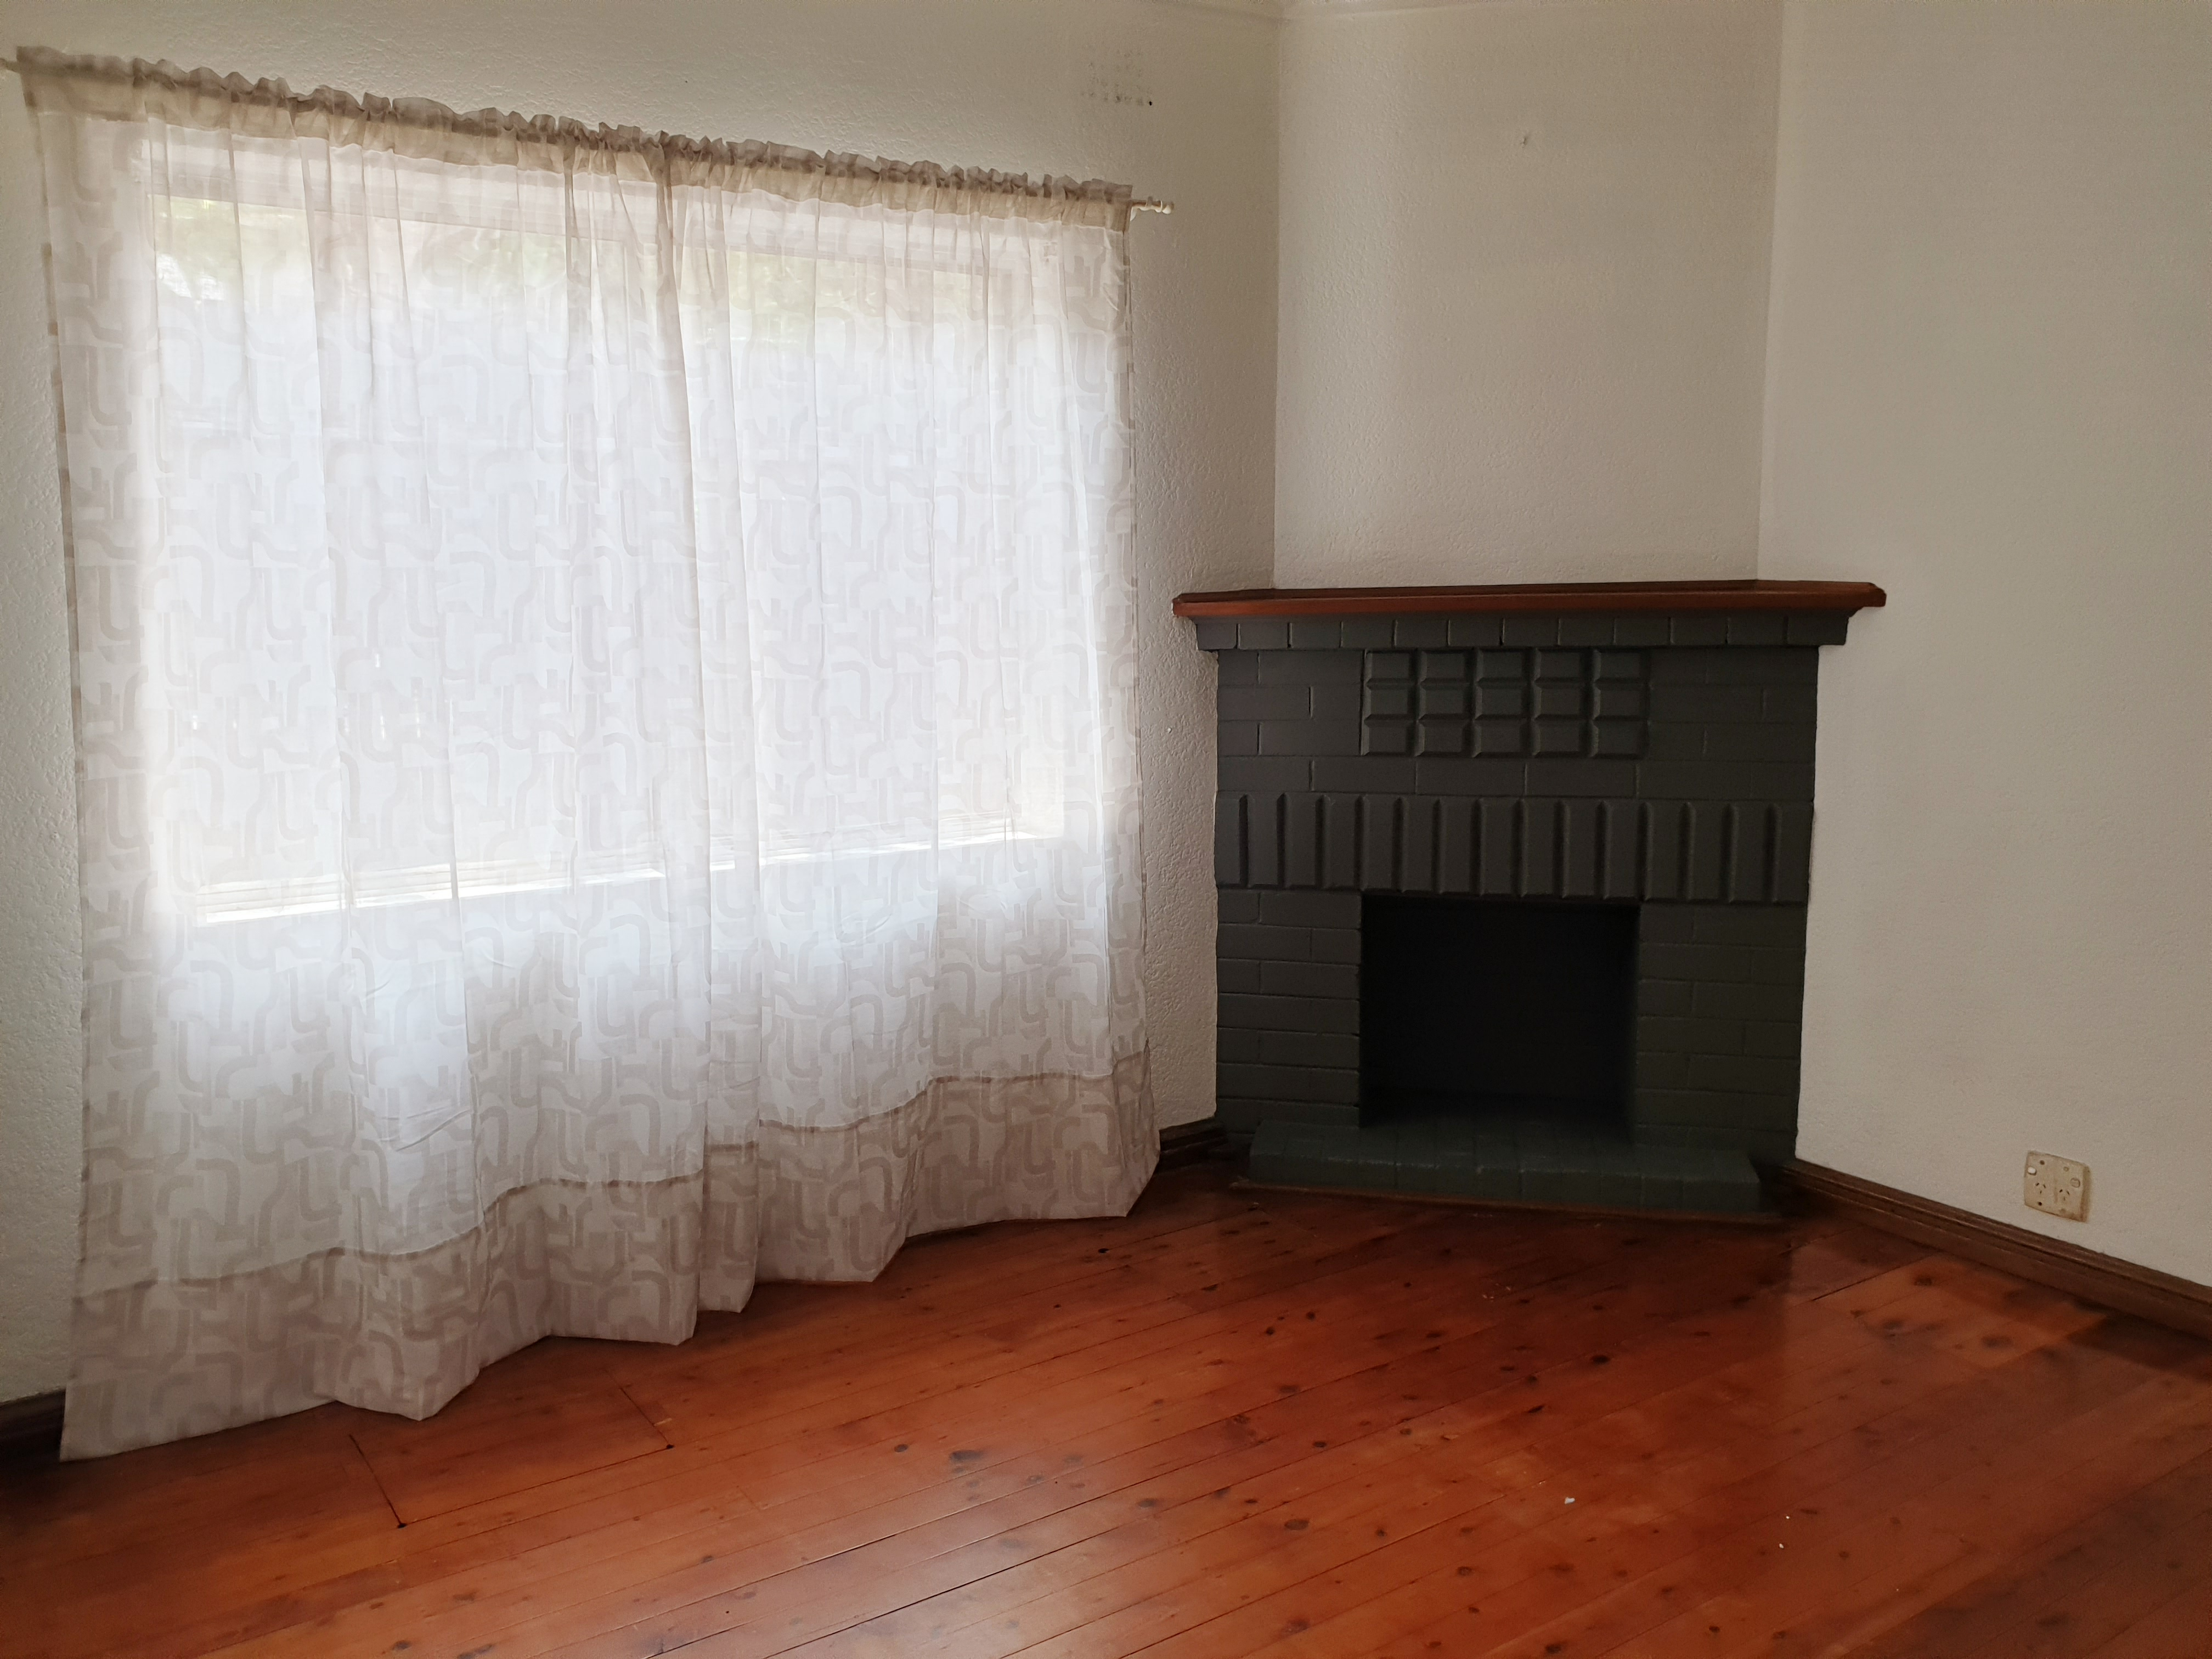 Image: 2 Bedrooms Semi in the Heart of South Hurstville